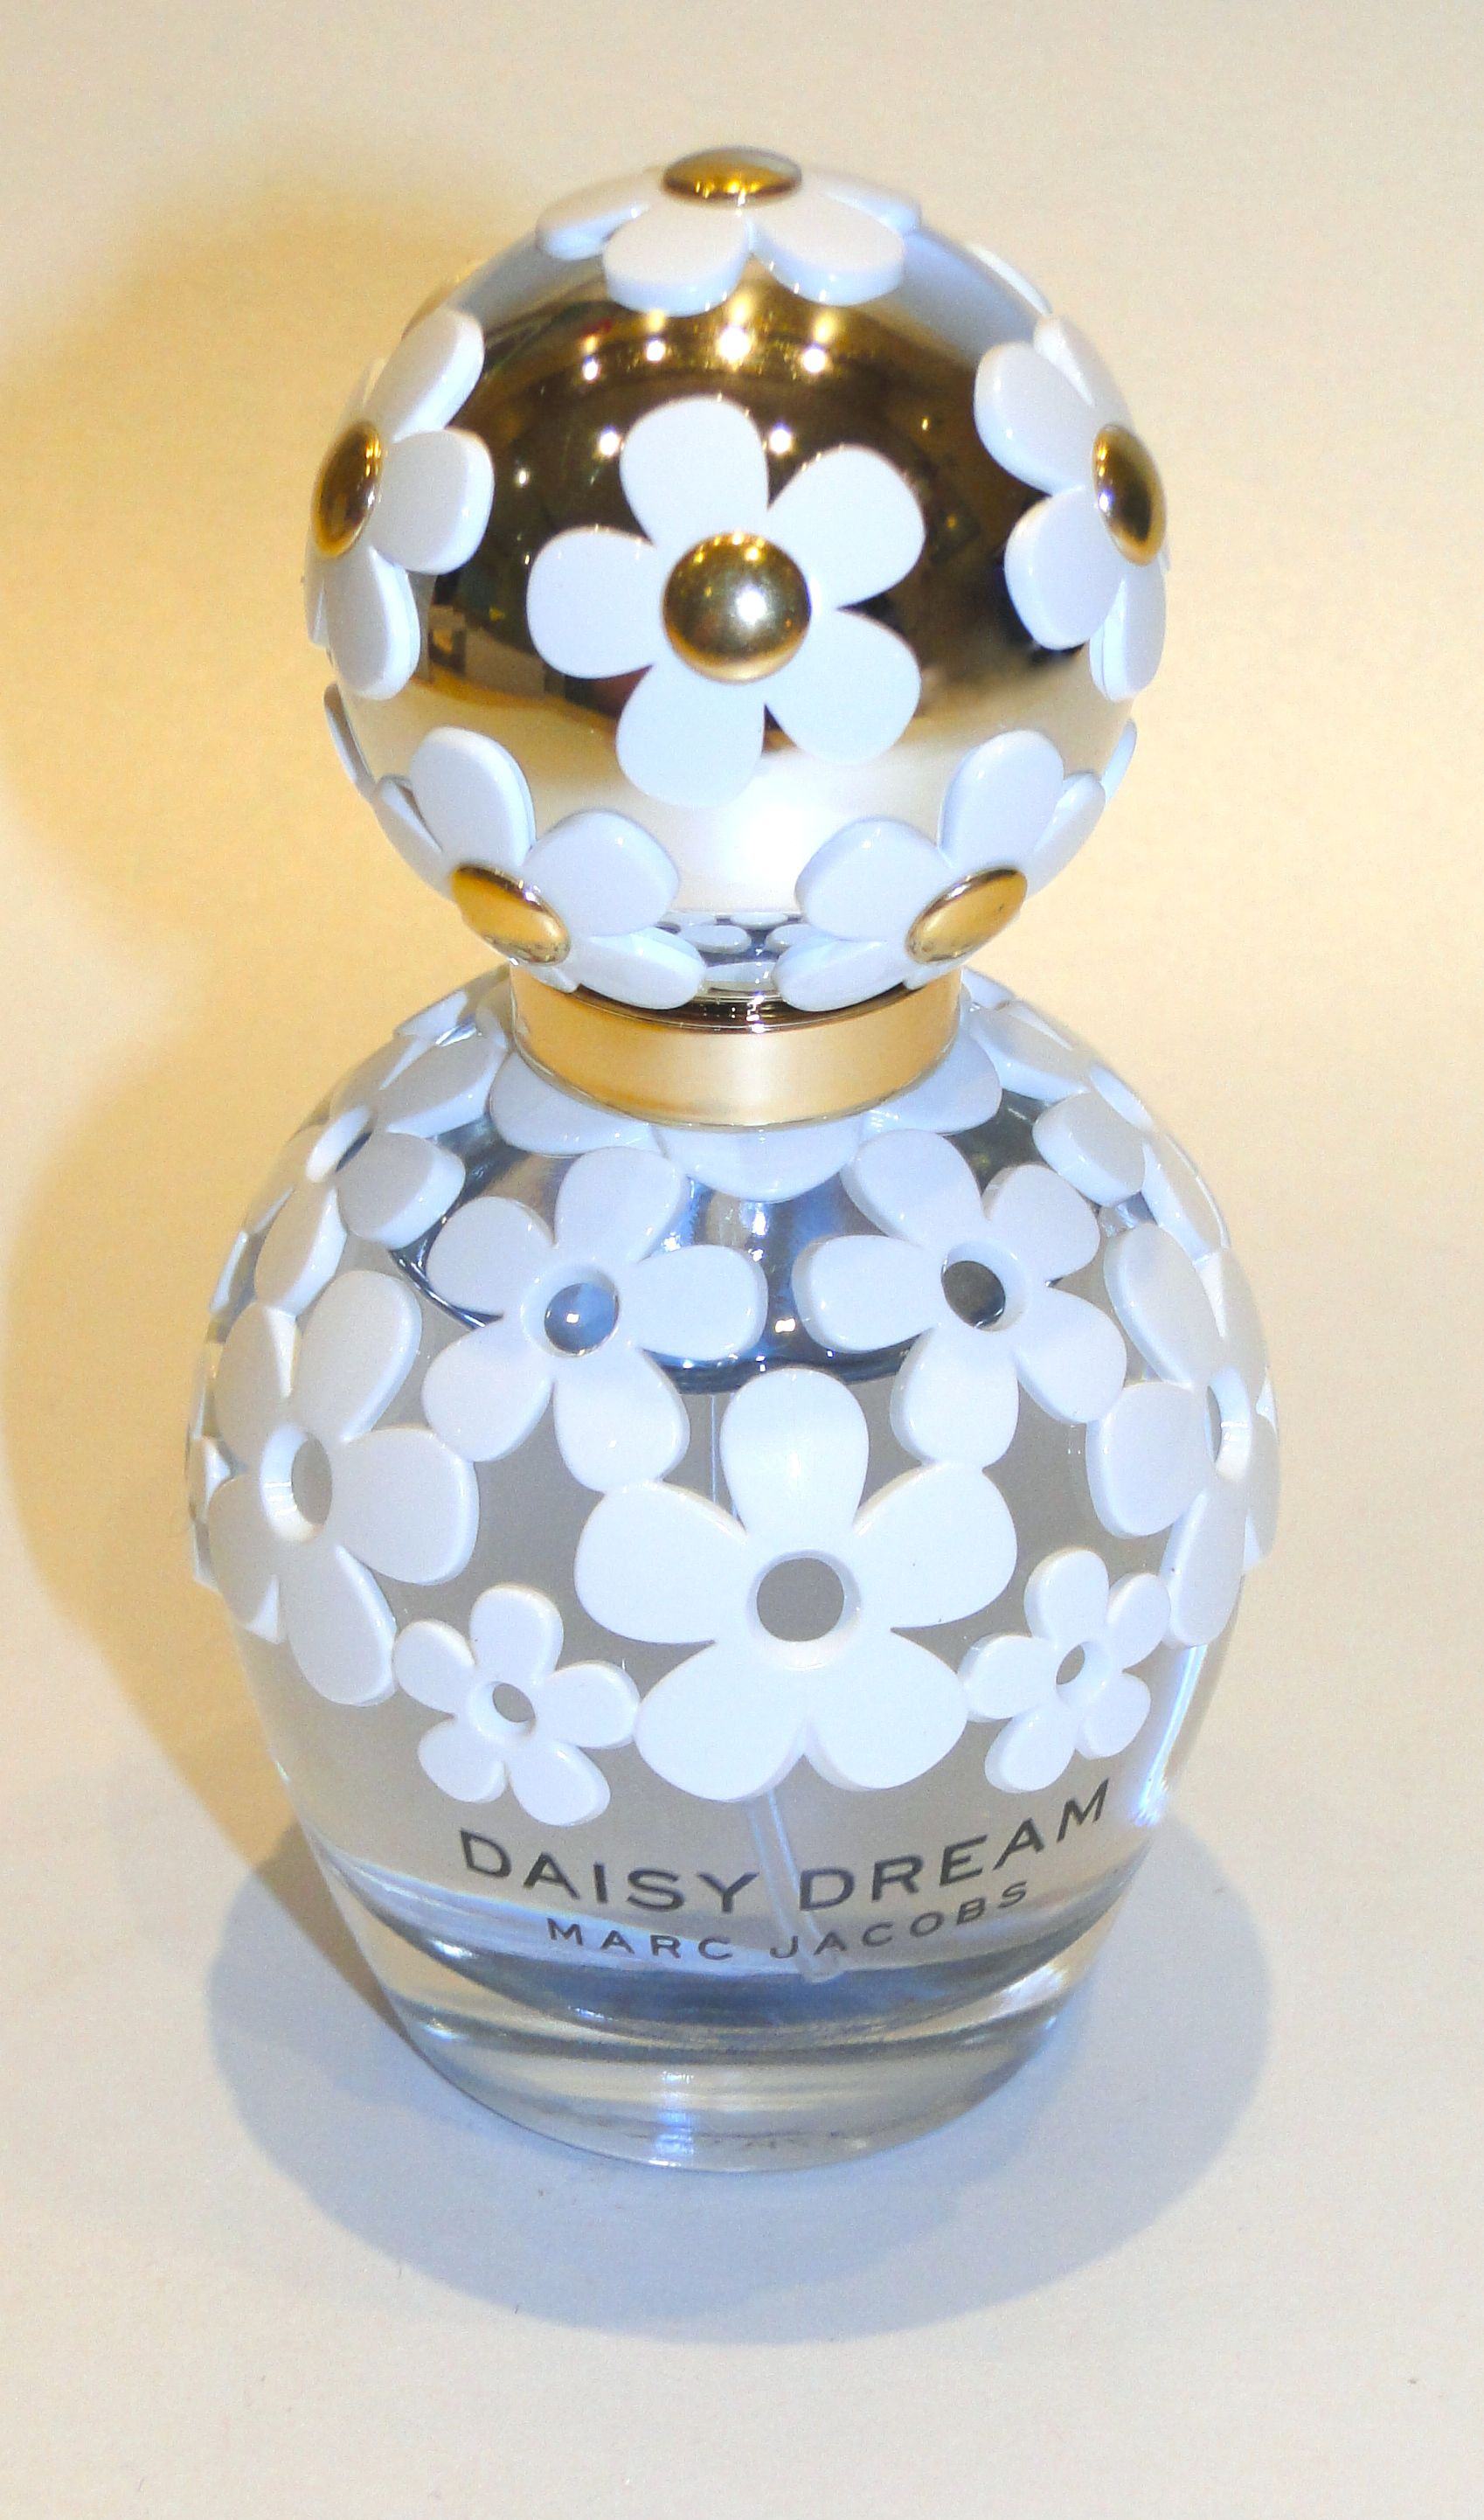 Marc Jacobs Daisy Dream